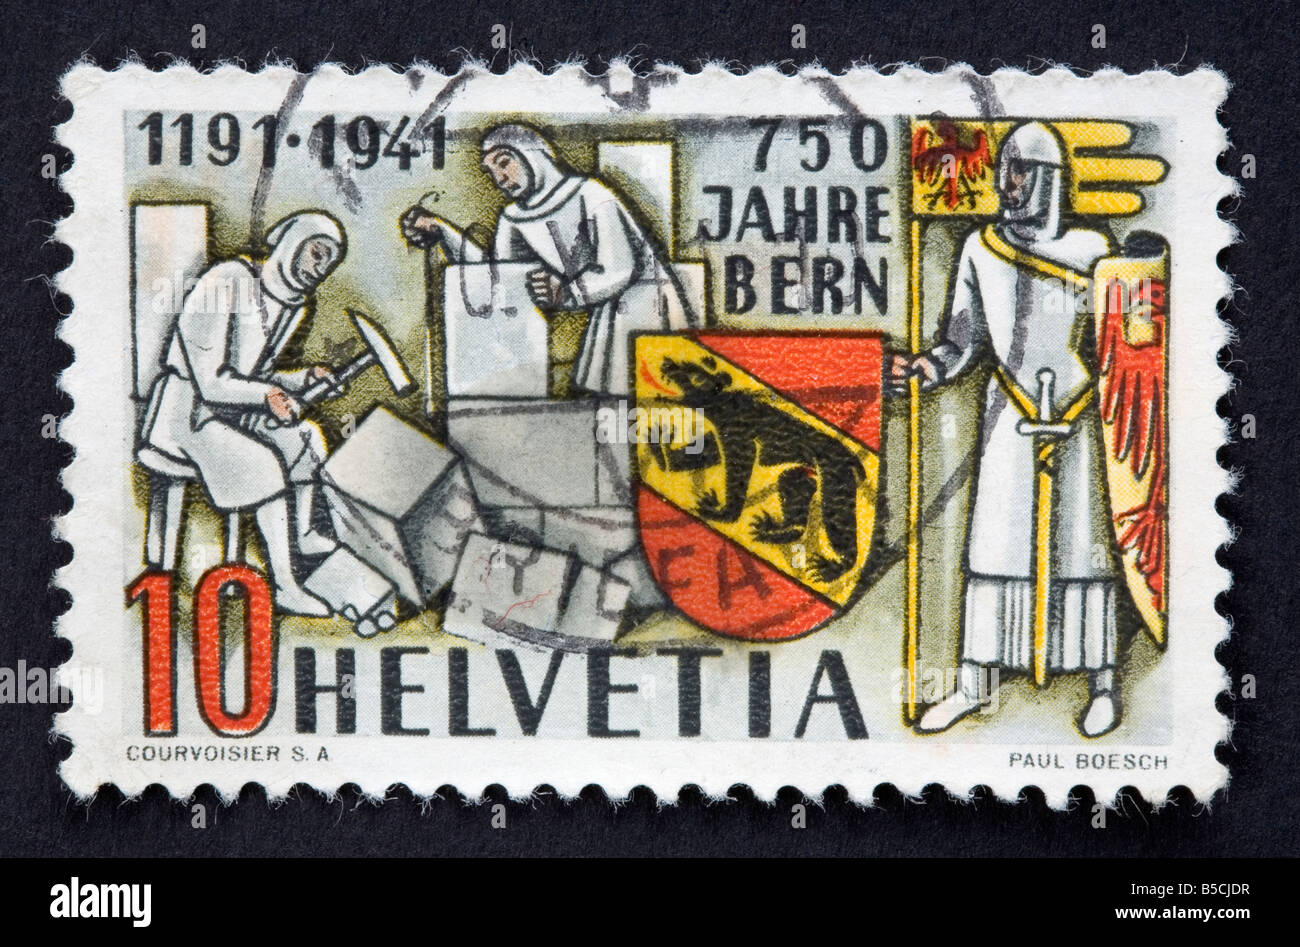 Swiss postage stamp - Stock Image